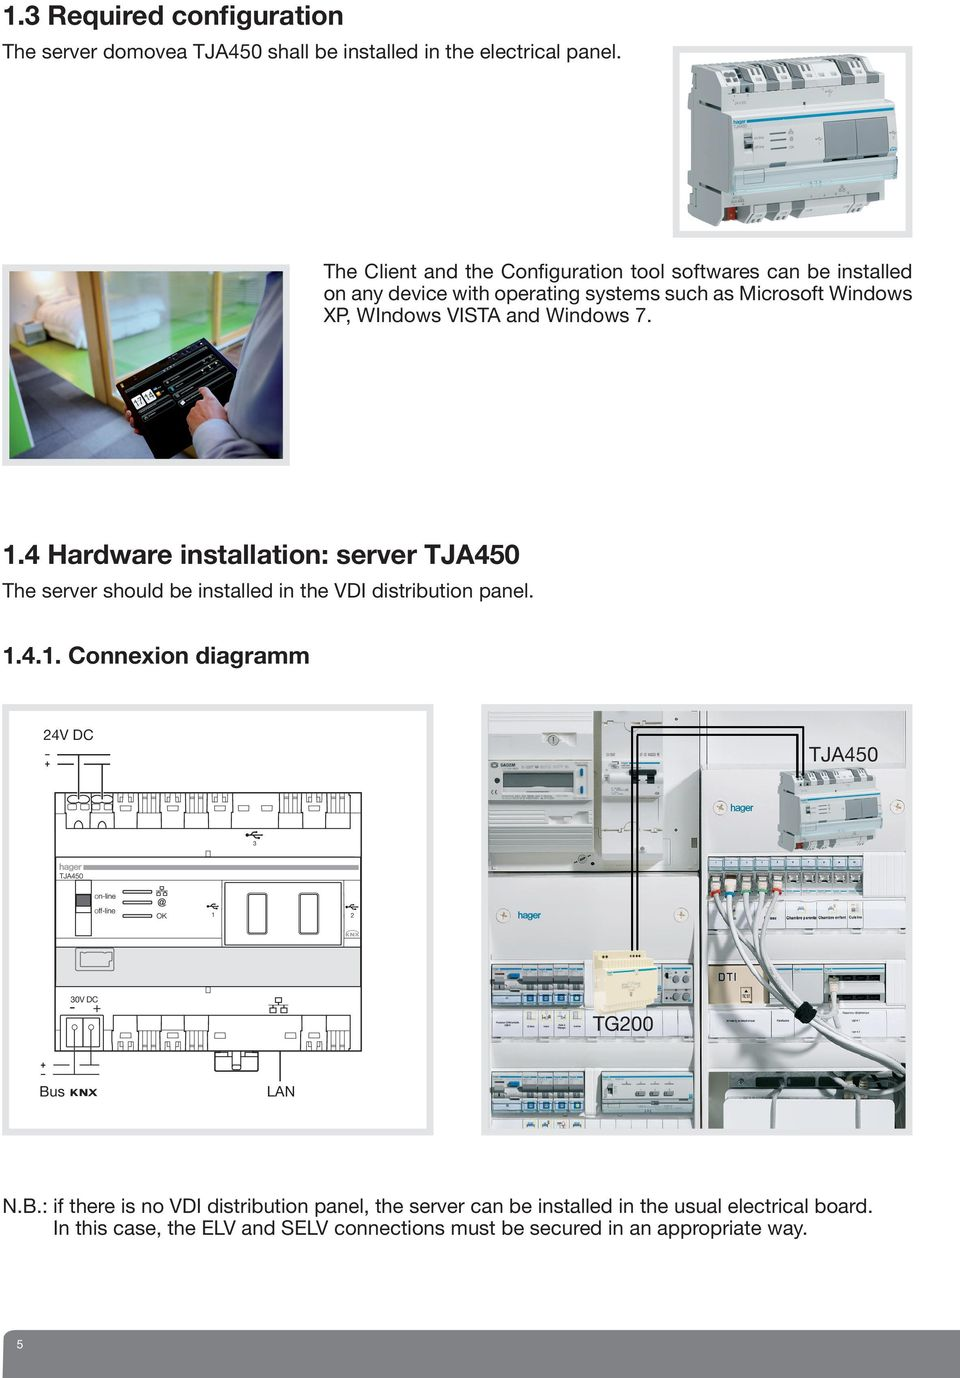 Windows 7..4 Hardware installation: server TJA450 The server should be installed in the VDI distribution panel..4.. Connexion diagramm 24V DC TJA450 0V DC - + TG200 Bus LAN N.